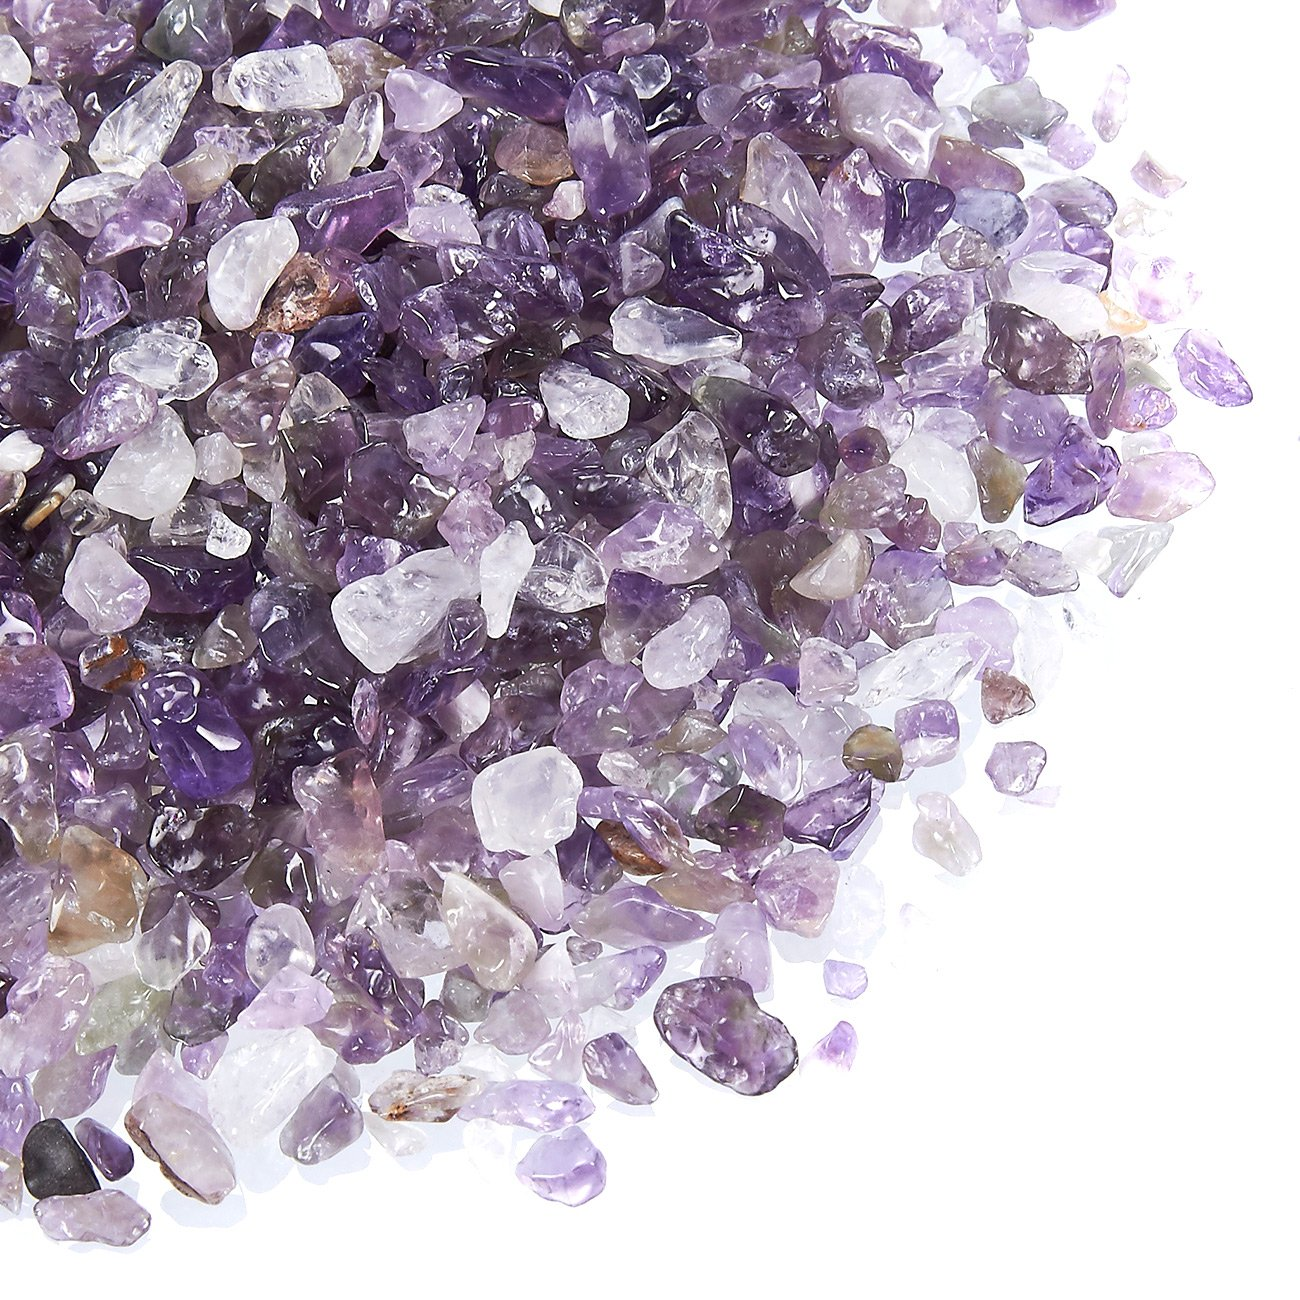 Natural Amethyst Crystal - Amethyst Tumbled Stone Chips, Crushed Crystal, Irregular Shaped Stones Healing Reiki, Jewelry Making, Home, Aquarium Decoration, 1 Pound